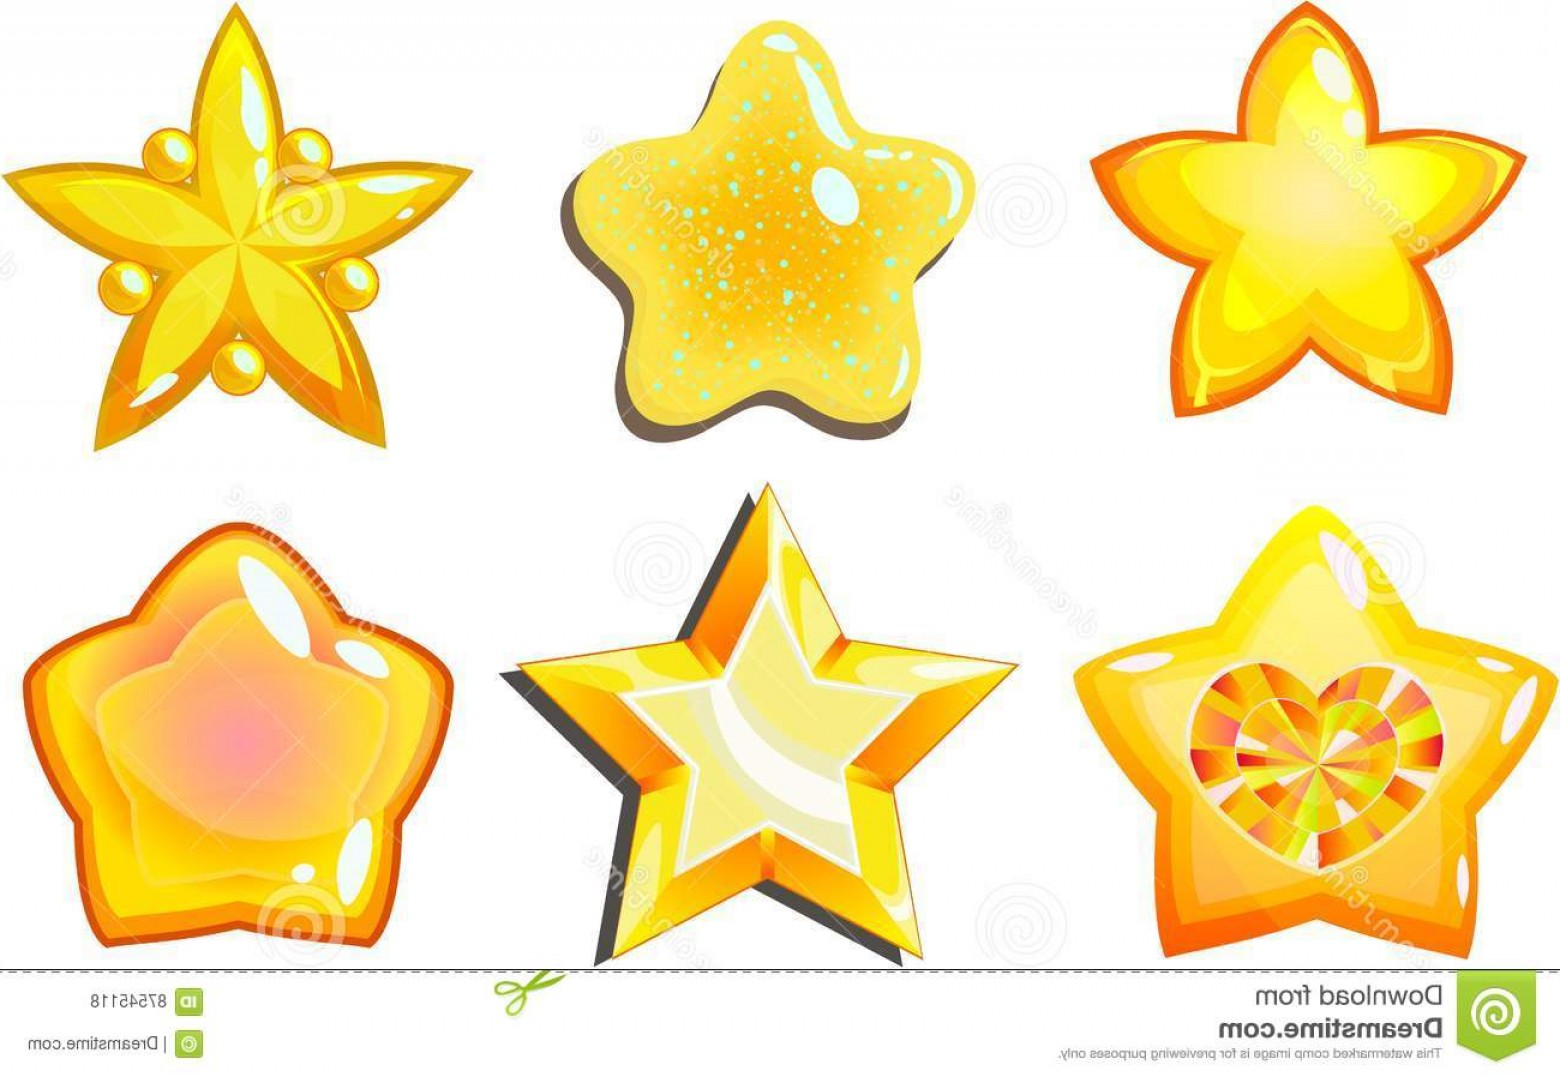 Free Vector Star: Stock Illustration Golden Stars Cartoon Vector Star Icons Set Glow Buttons Fantasy Game Isolated Transparent Background Image